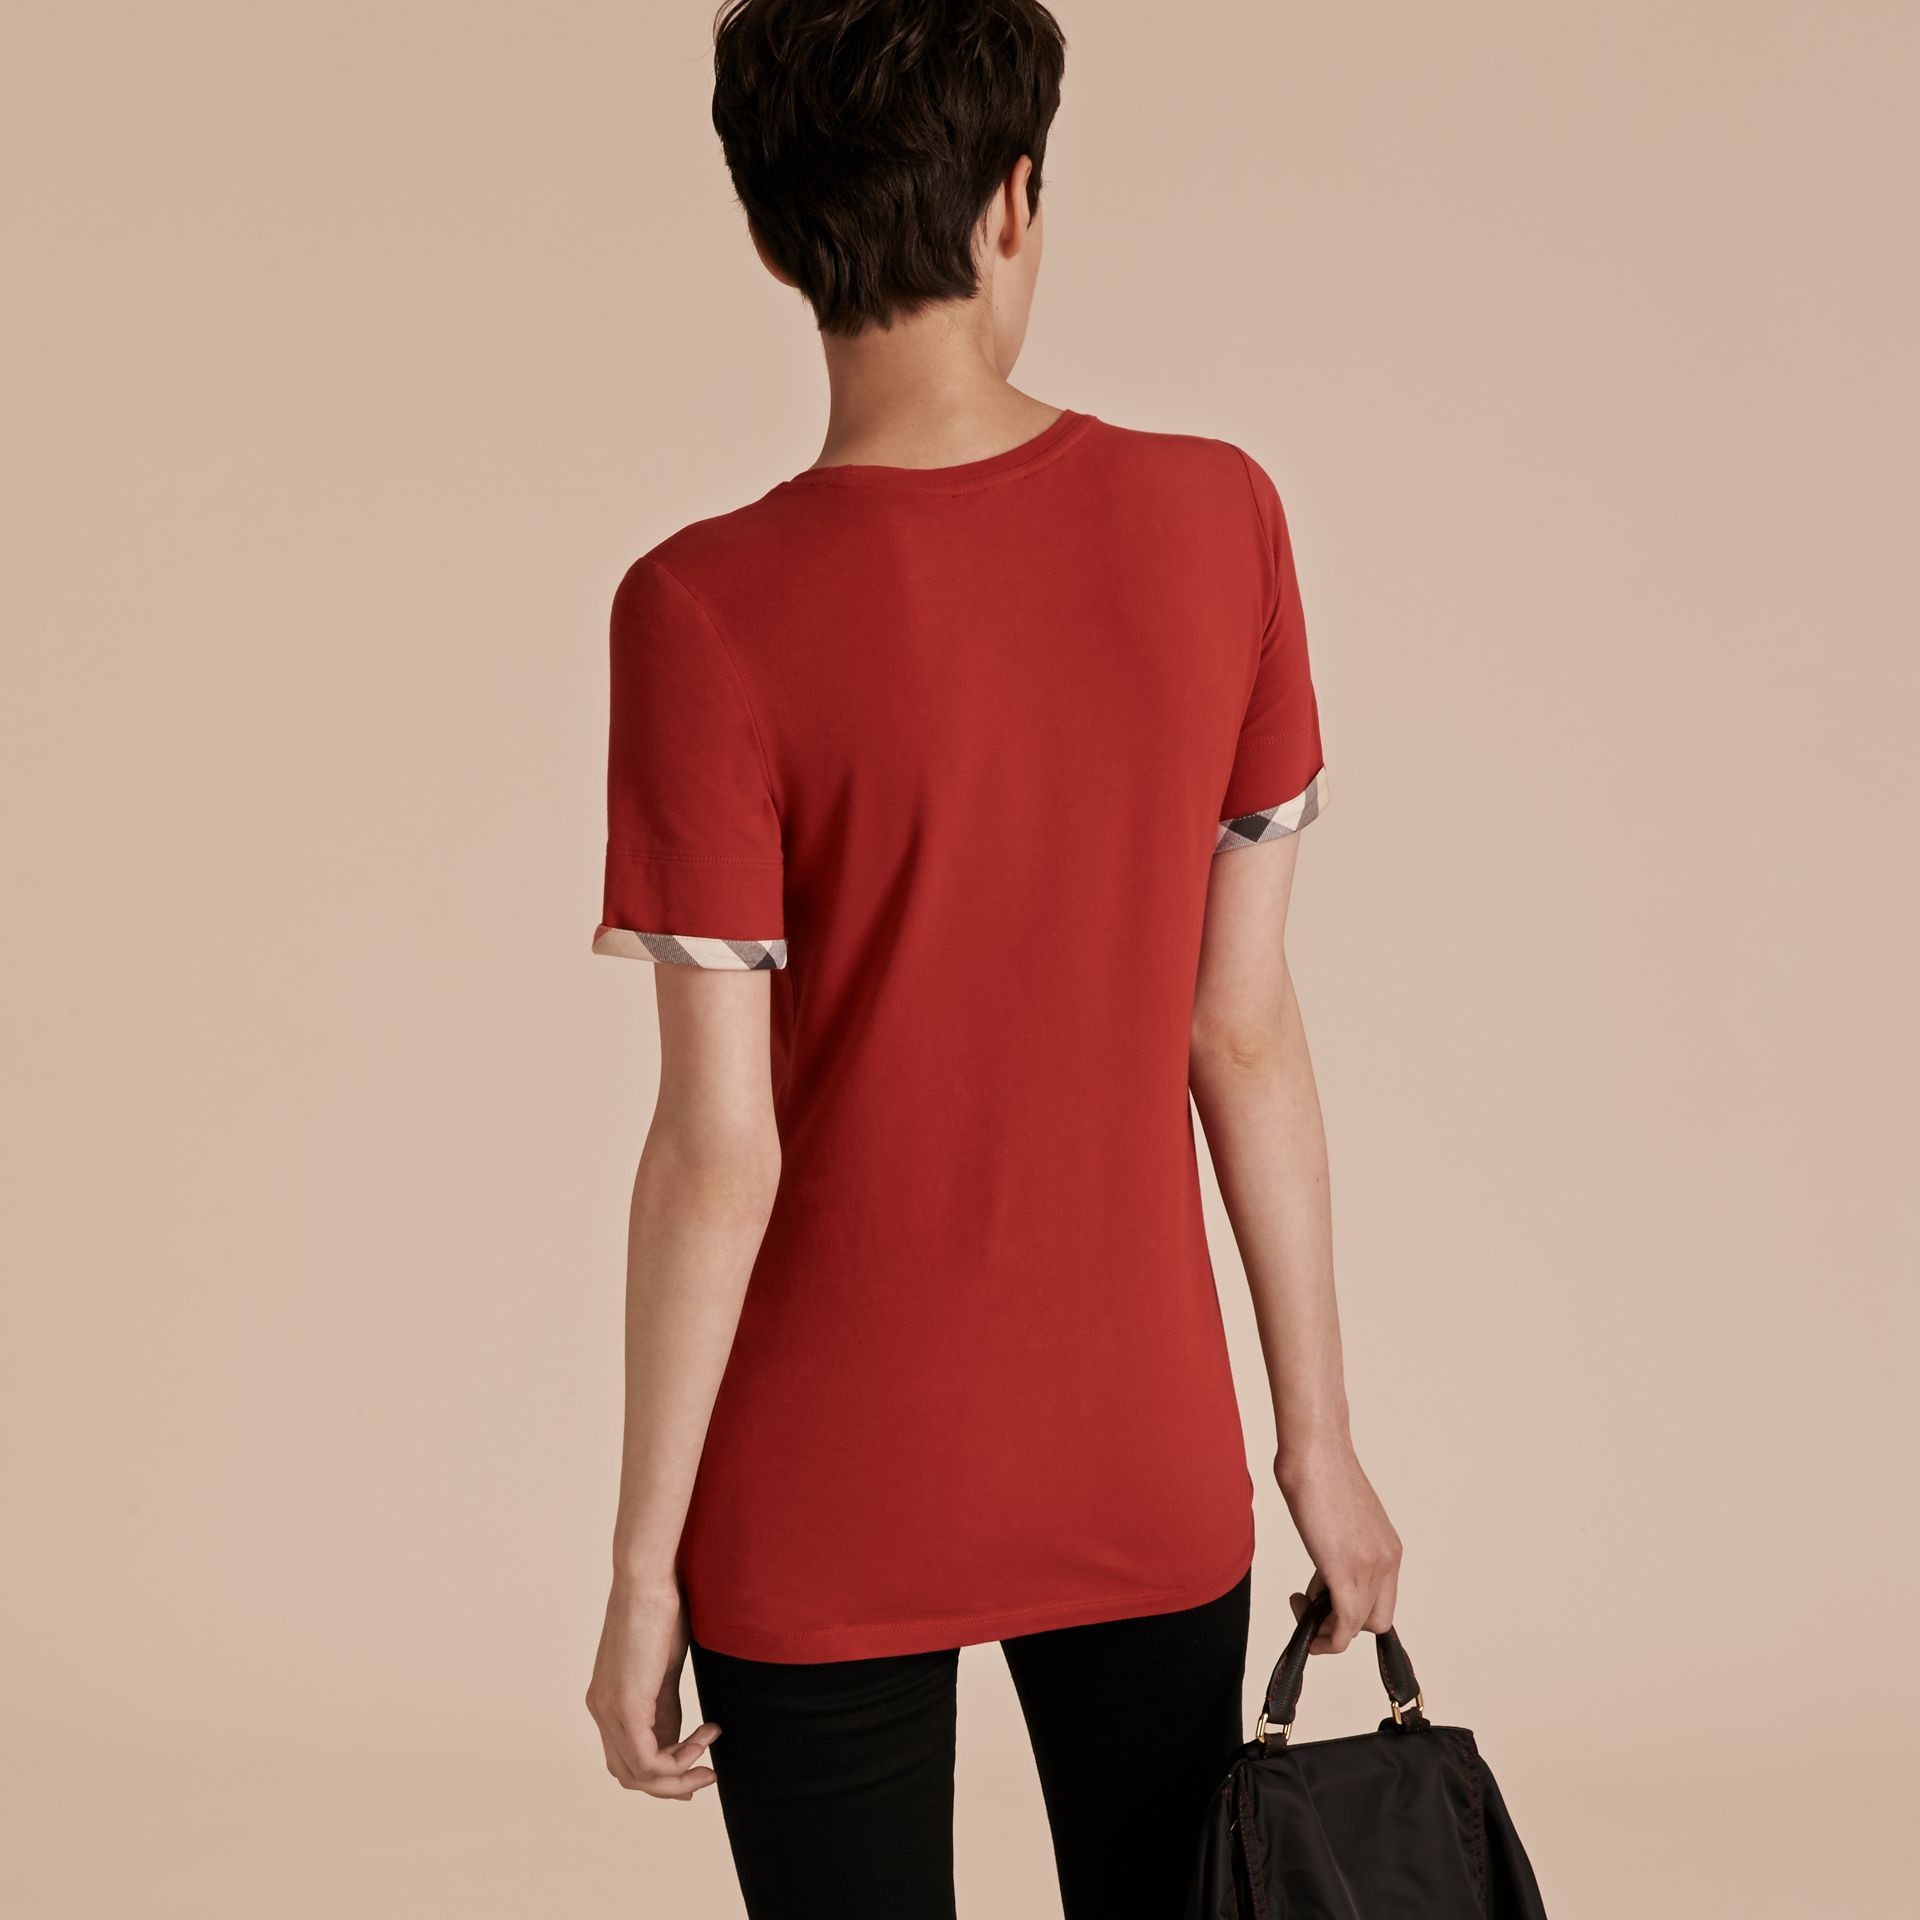 Lacquer red Check Cuff Stretch Cotton T-Shirt Lacquer Red - gallery image 3